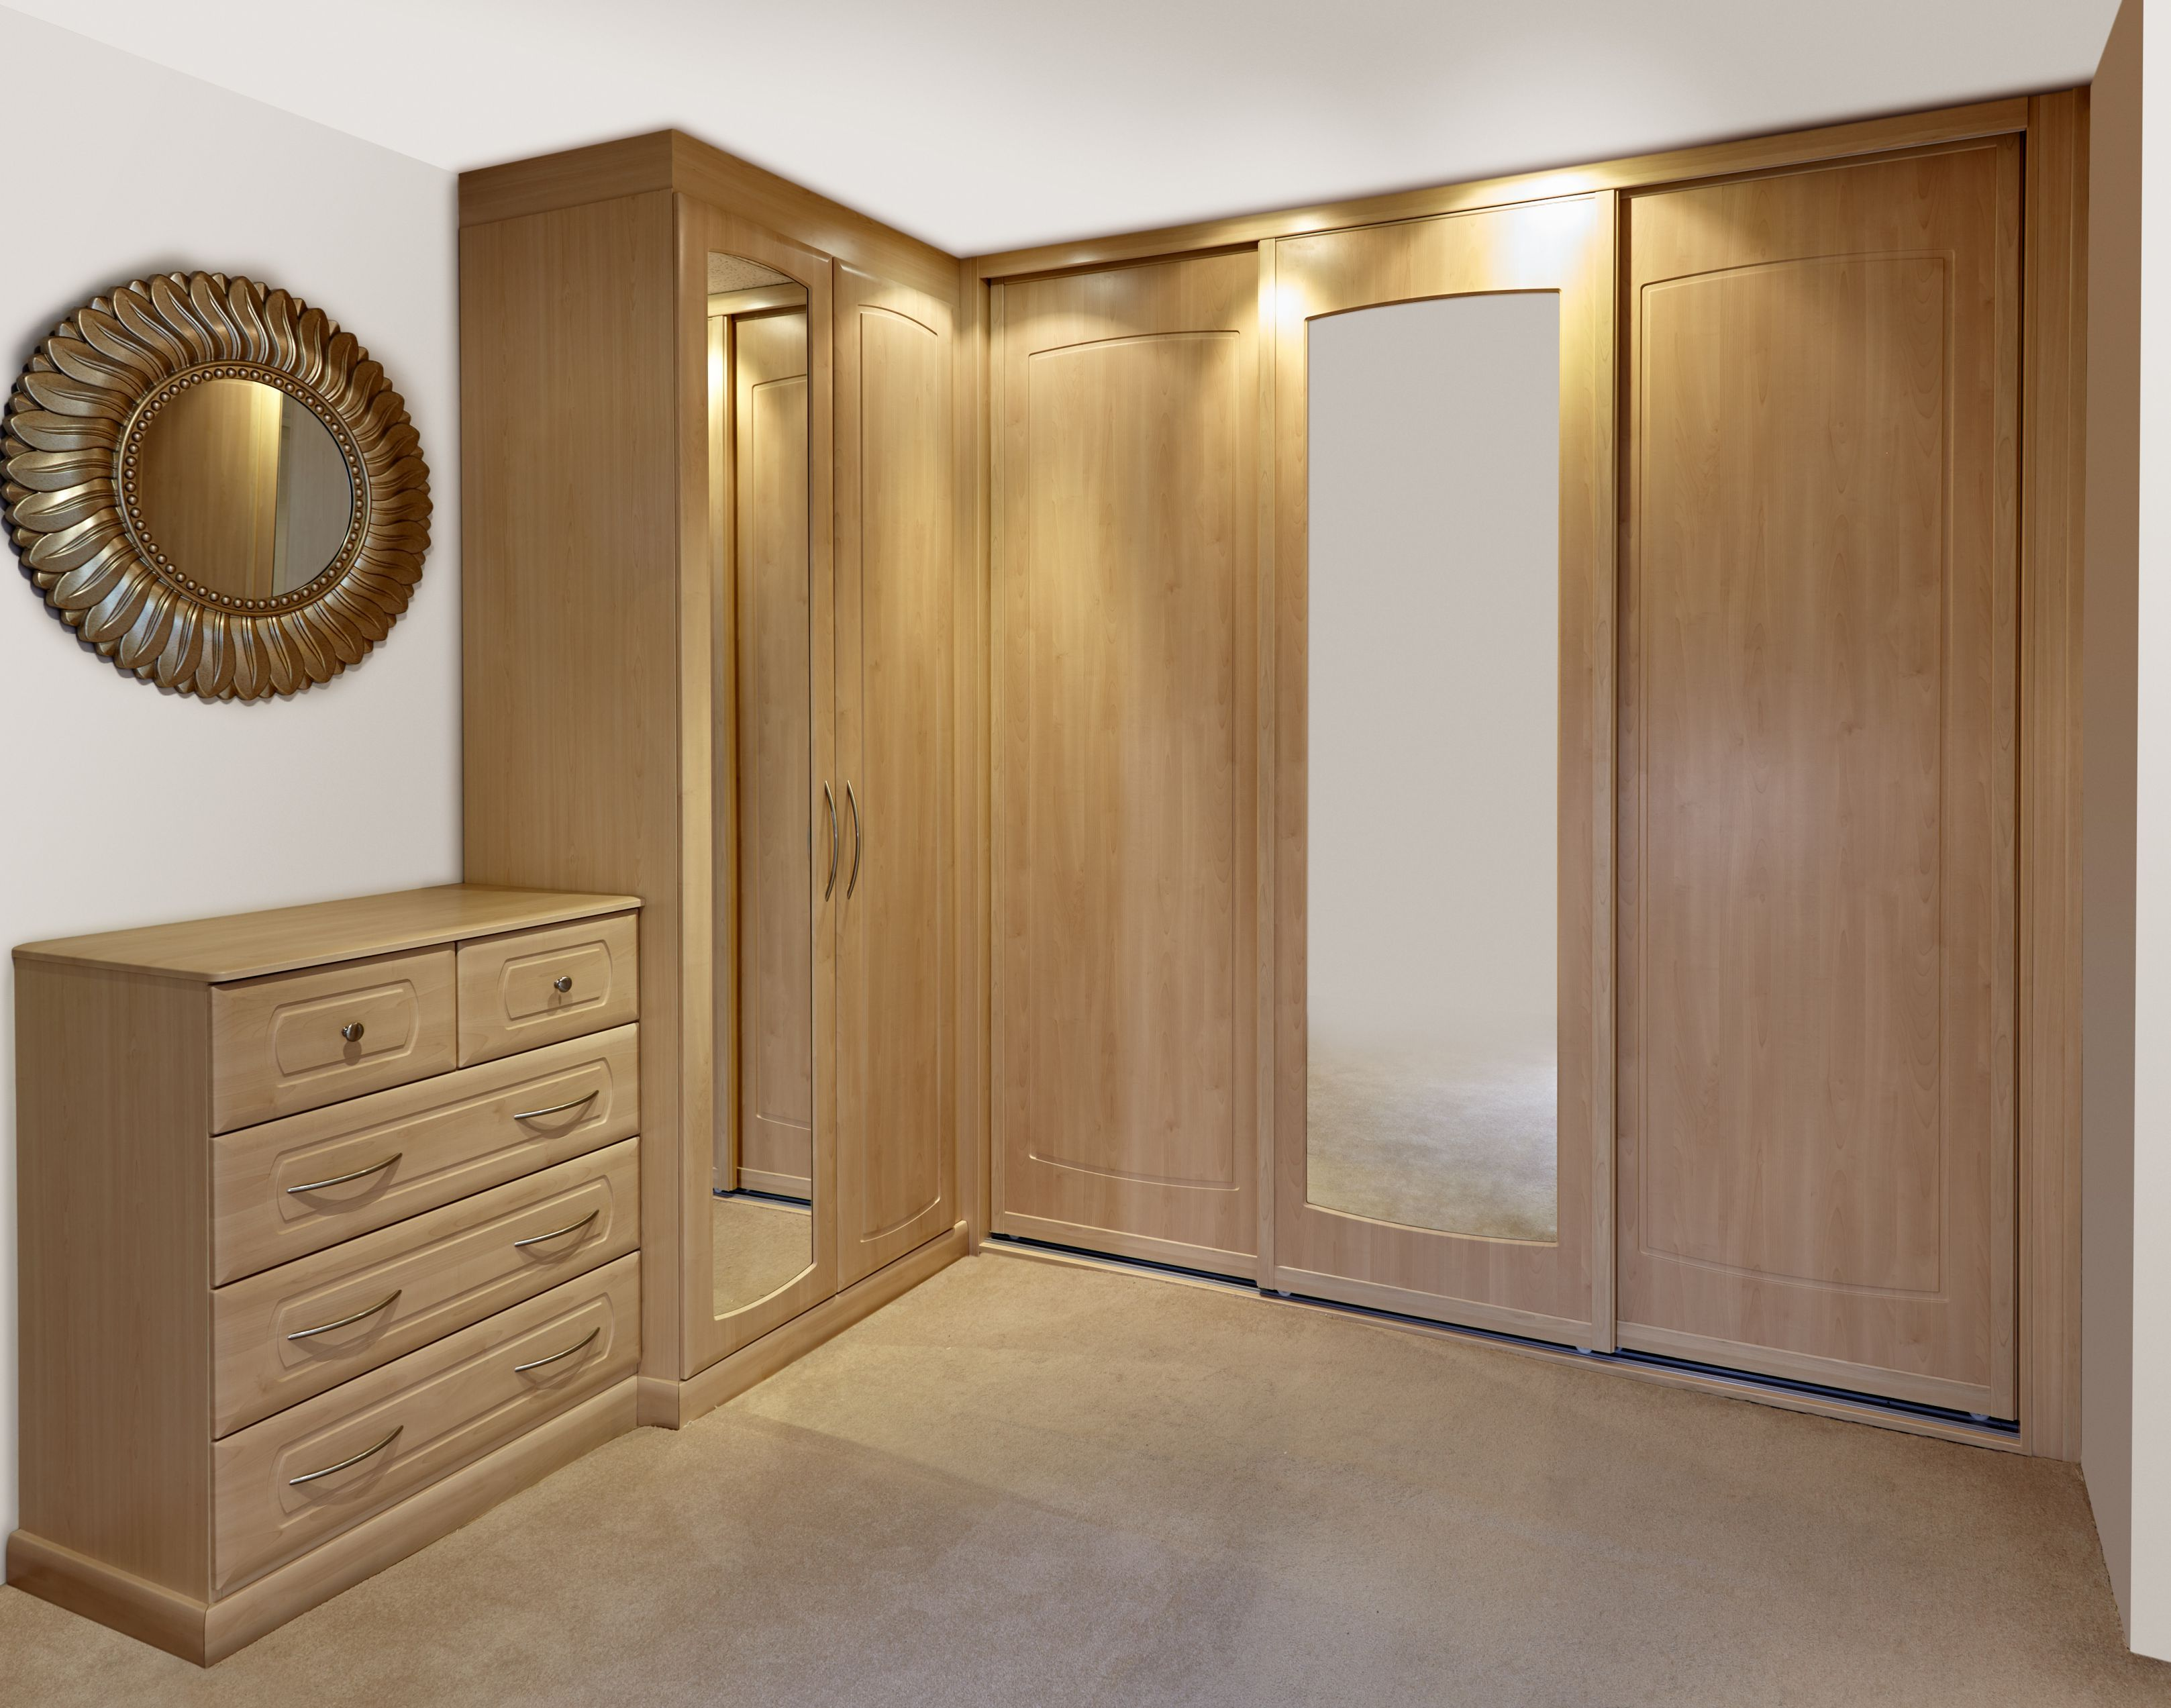 Built In Wardrobe Designs For Bedroom Magnificent Fitted Bedroom Furniture Ltd Built Wardrobe Ideas Small Bespoke Decorating Inspiration